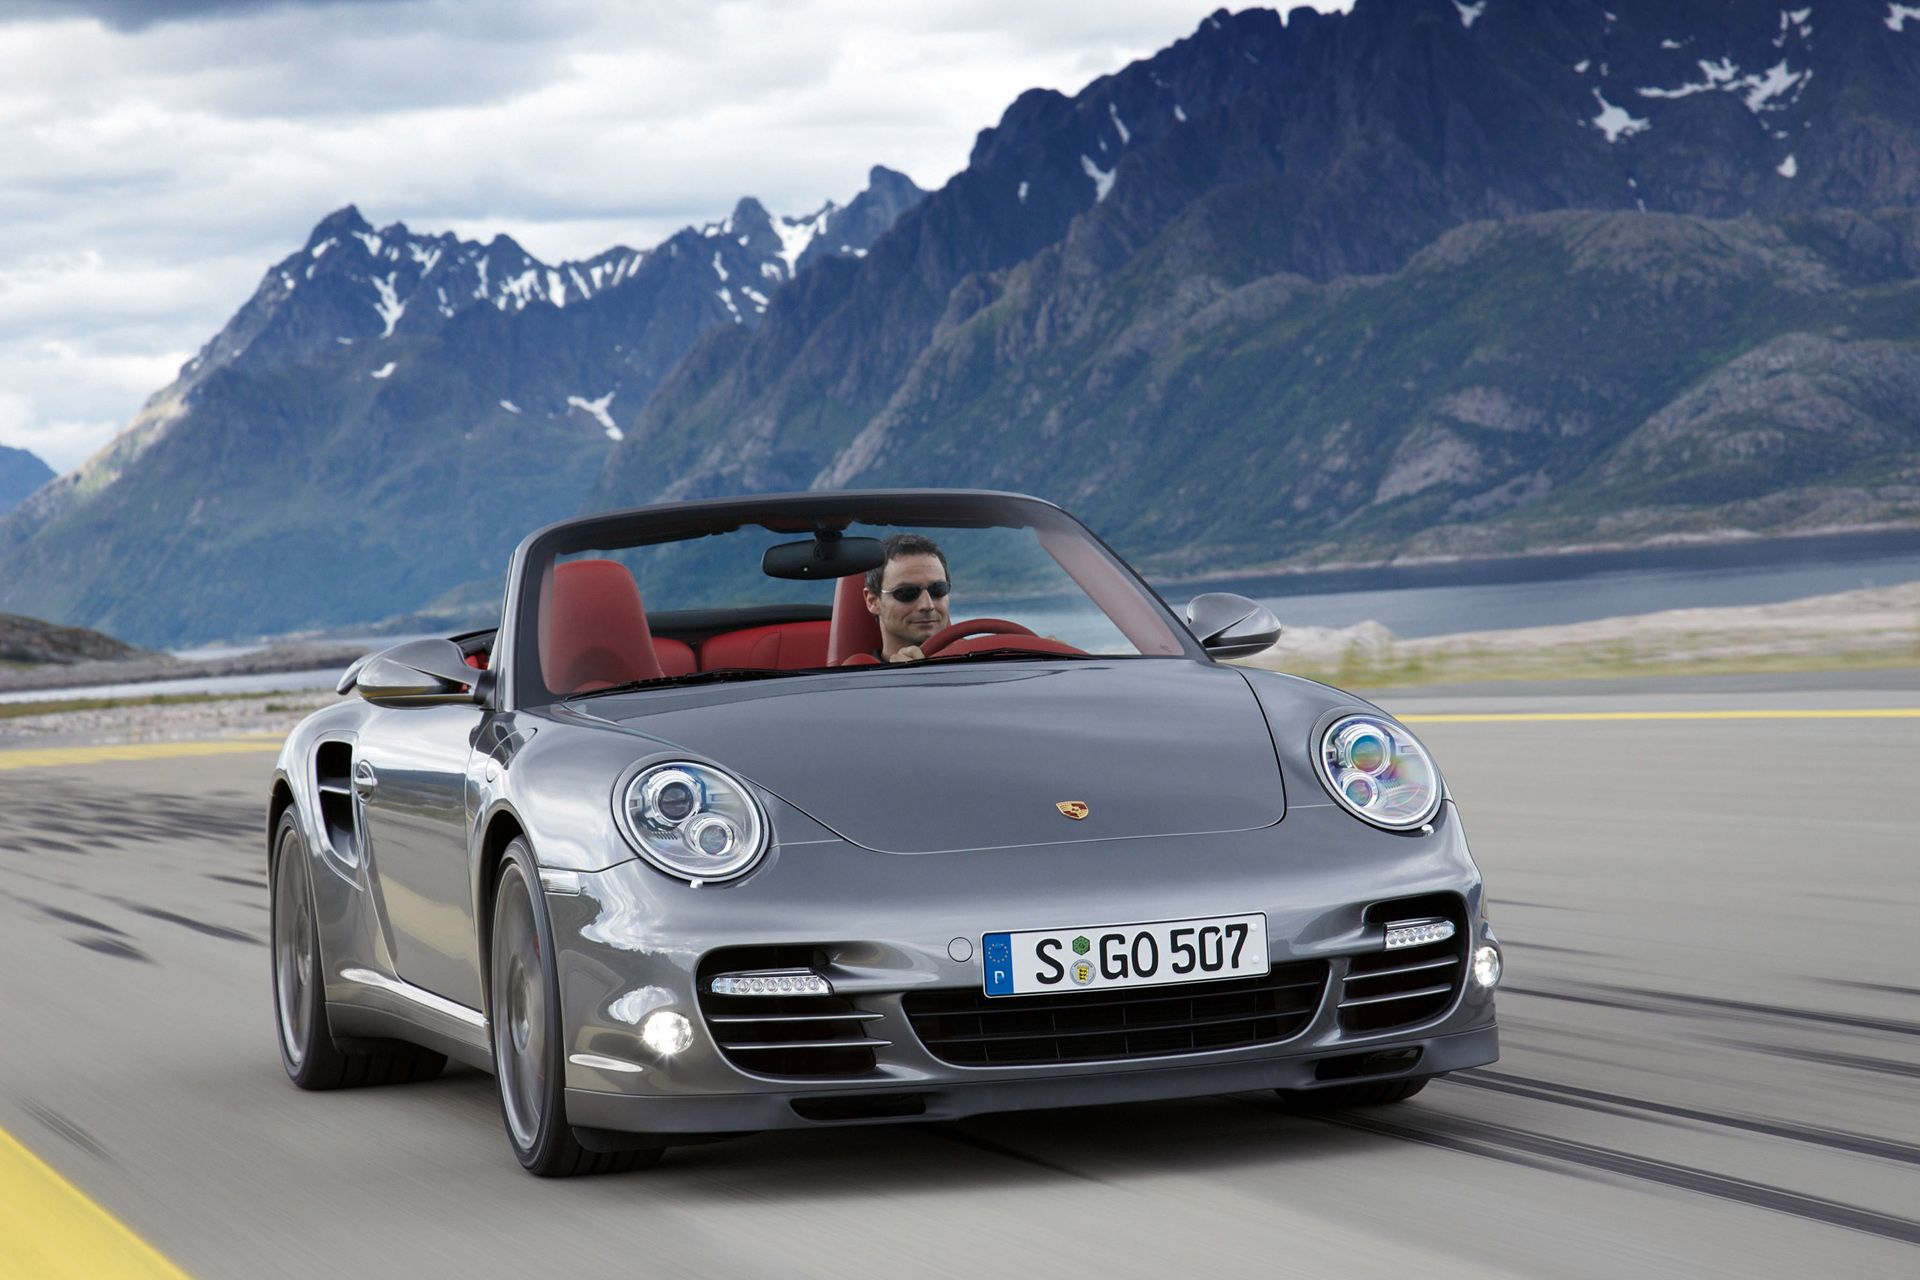 porsche 911 turbo cabriolet 997 photos photogallery with 15 pics. Black Bedroom Furniture Sets. Home Design Ideas